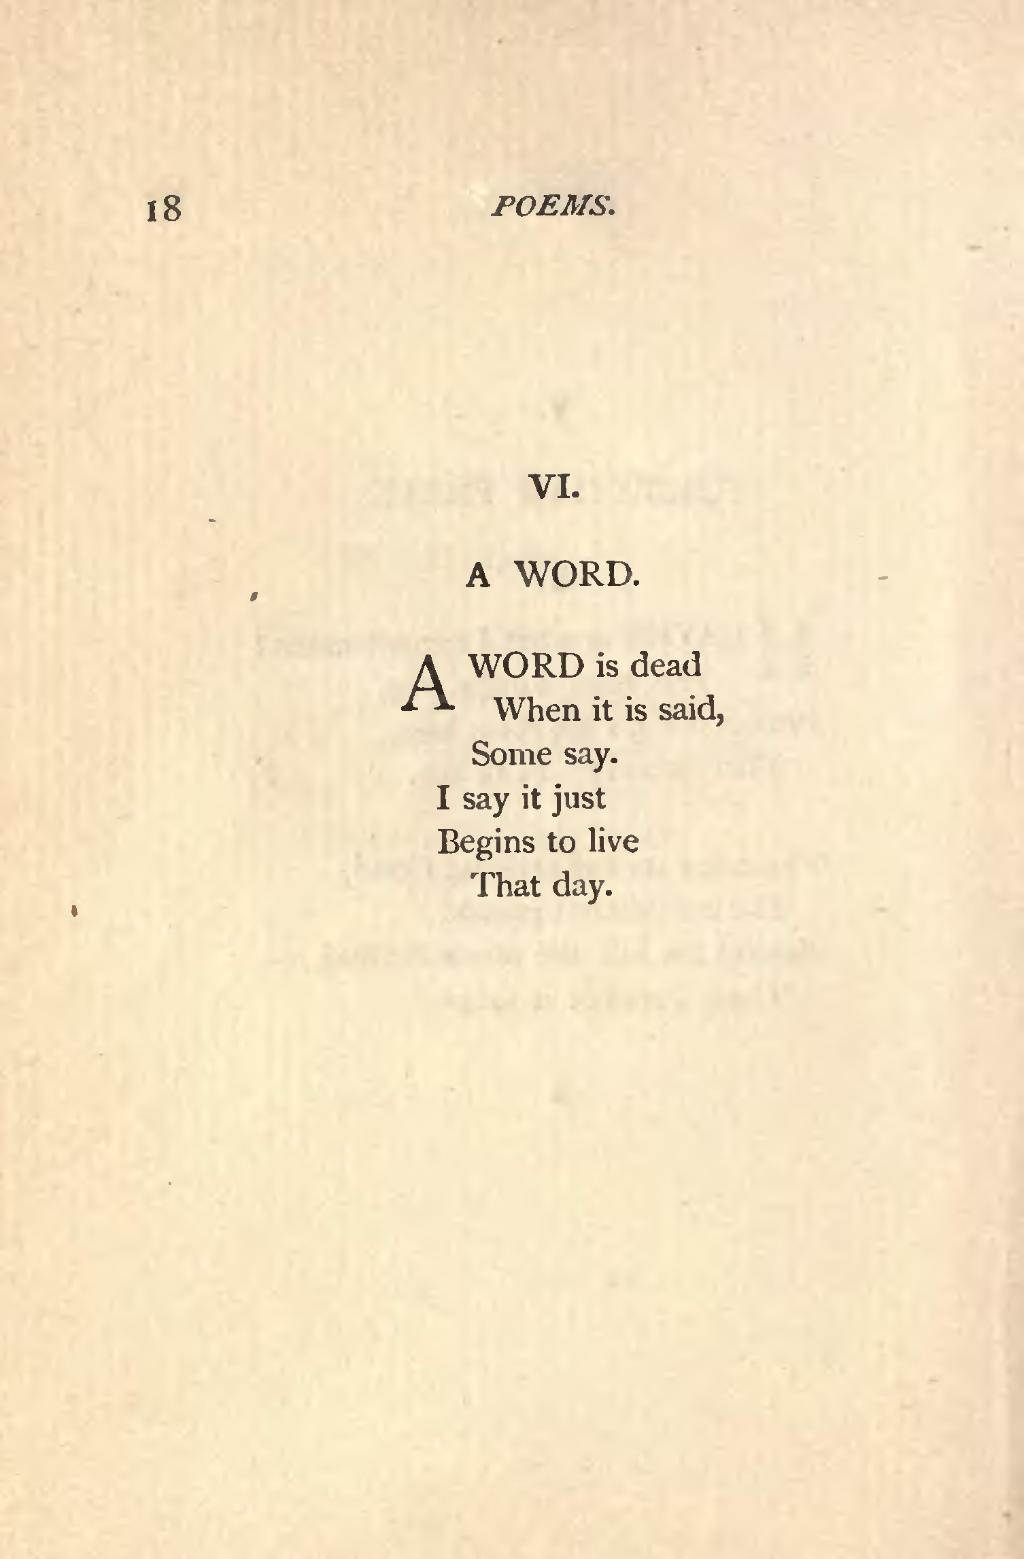 emily_dickinson_poems_-_third_series_1896-djvu